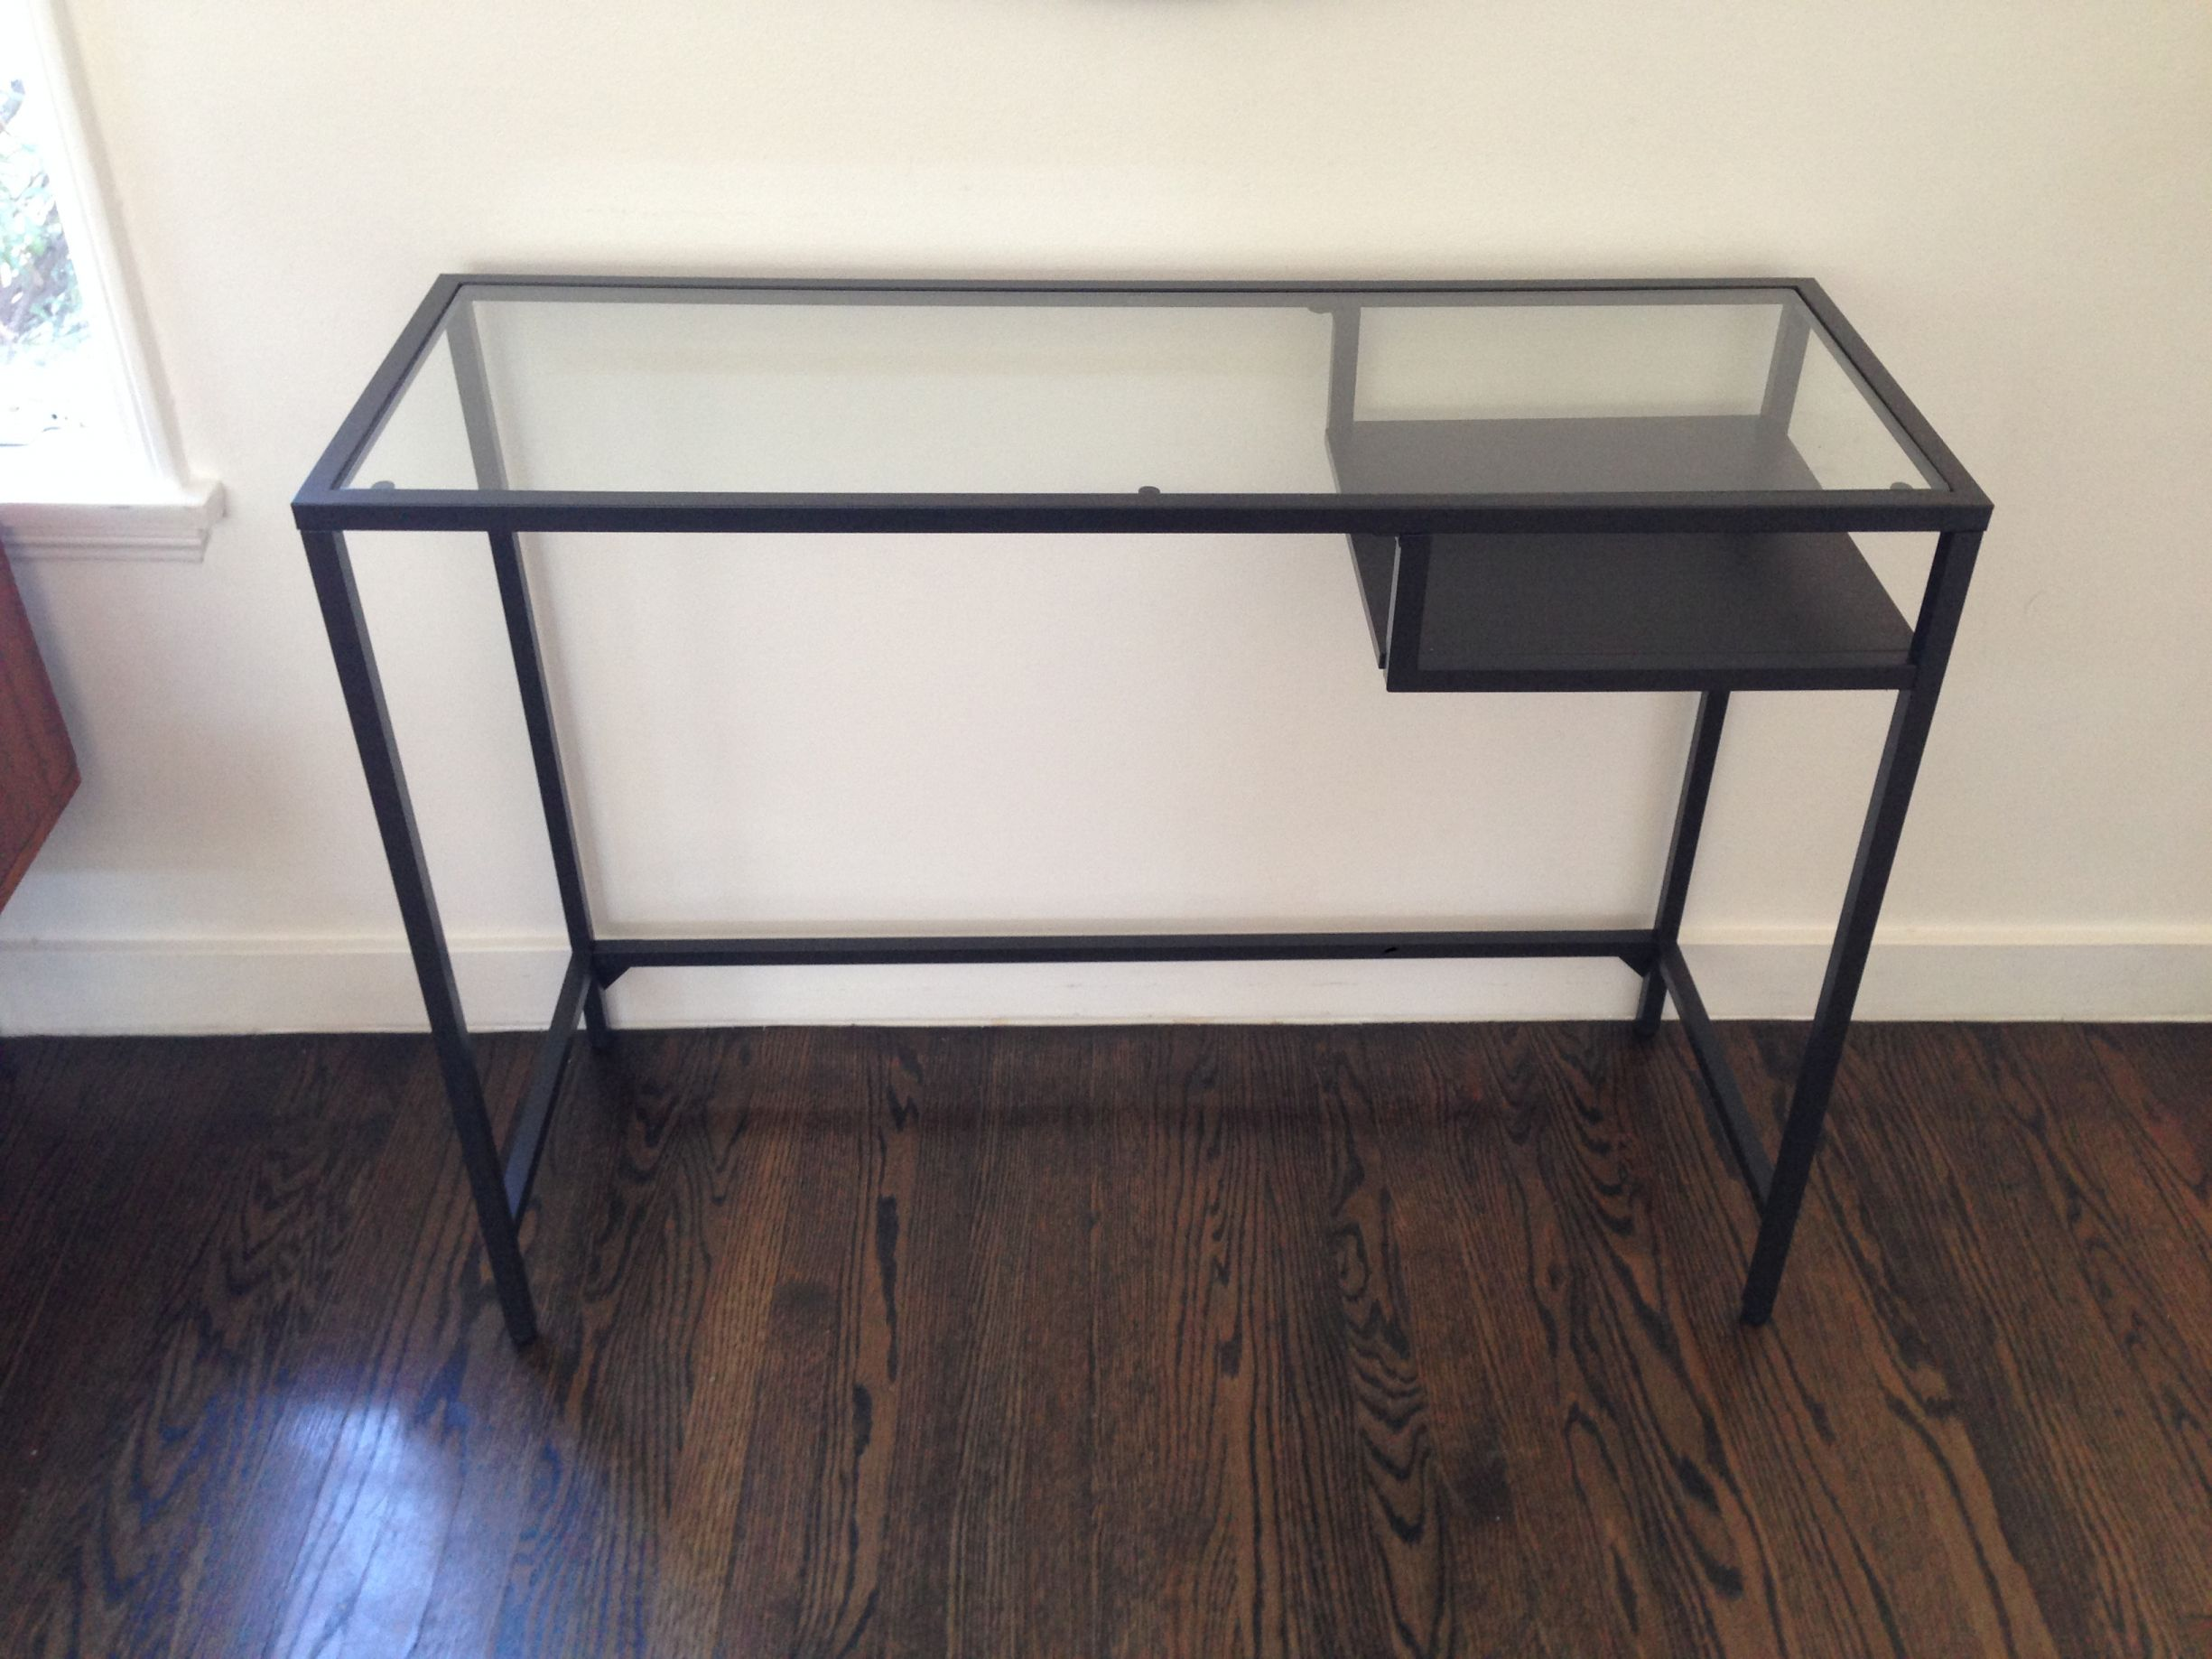 99 Ikea Glass Top Desk Diy Corner Desk Ideas Check More At Http Michael Malarkey Com Ikea Glass Top Desk Ikea Console Table Ikea Laptop Table Ikea Desk